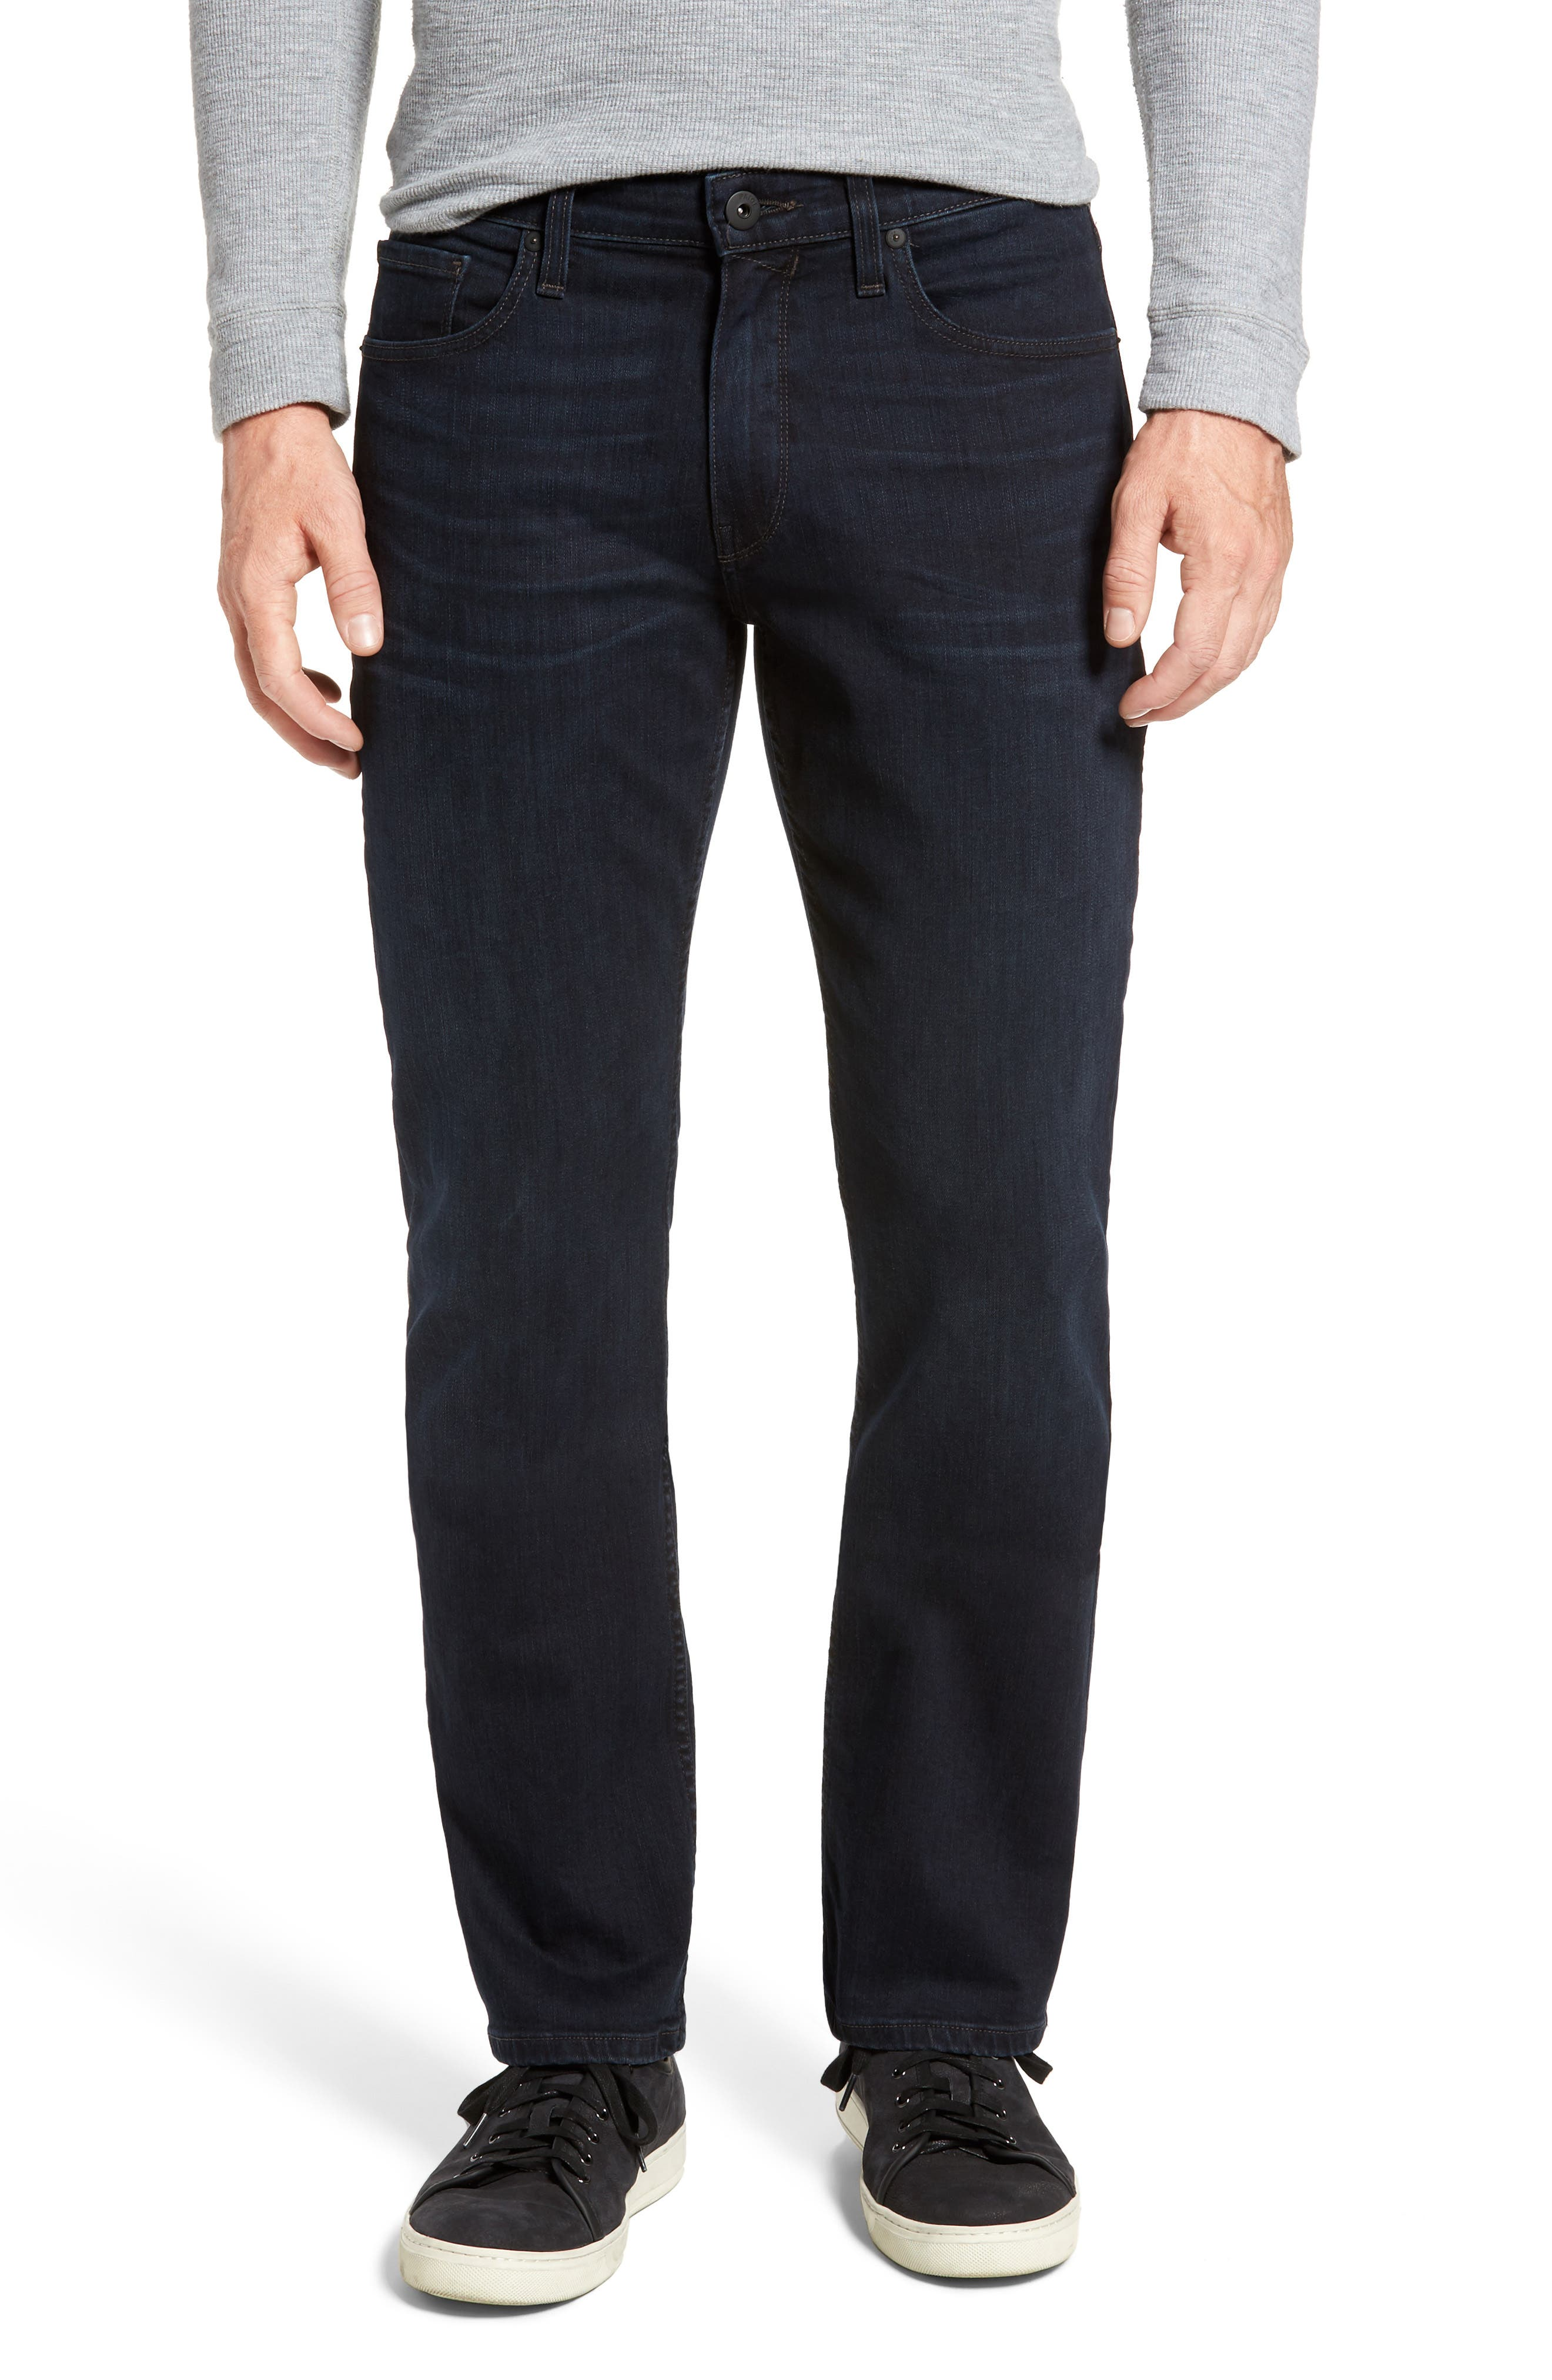 Doheny Relaxed Straight Leg Jeans,                             Main thumbnail 1, color,                             400